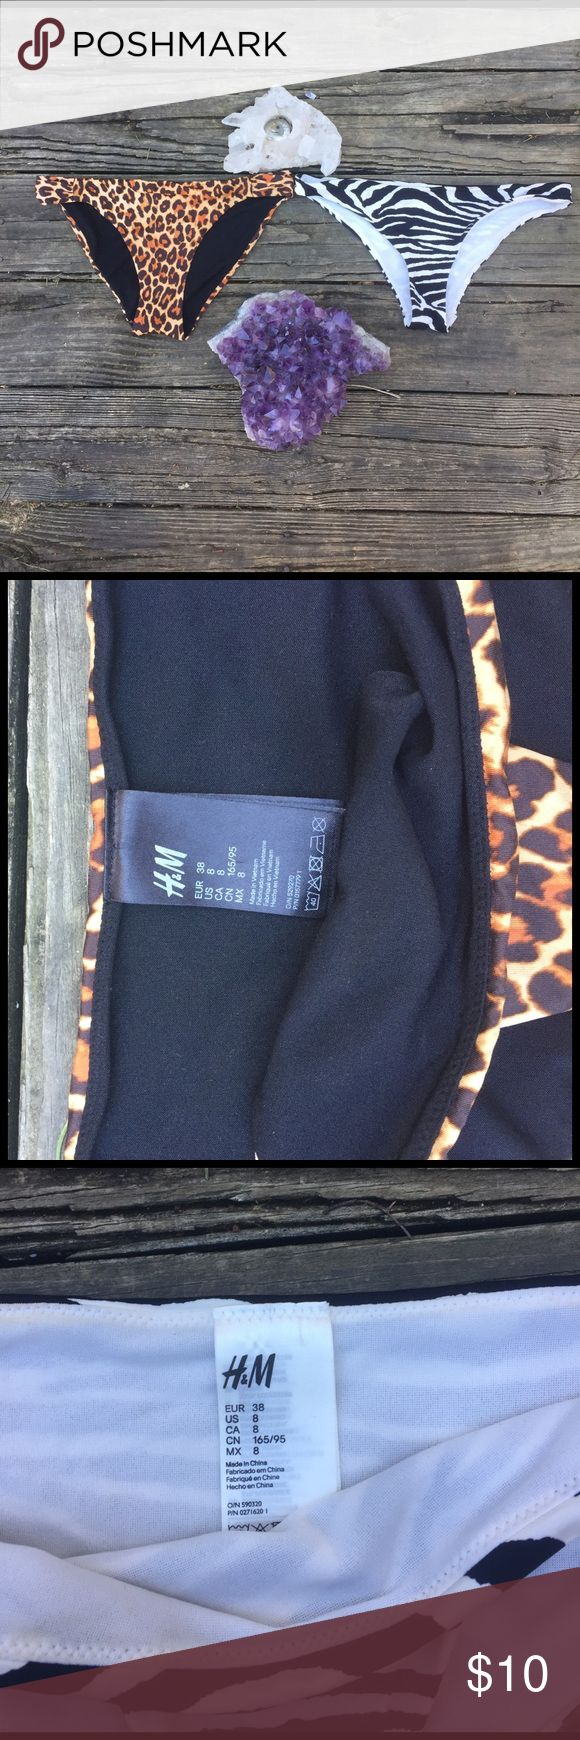 Animal Print Bikini Bottoms Bundle H&M BOGO! These both have barely been worn. Each says they are size 8 but fit more like a 4 or small 6. The zebra pair does has a small stain on the inside fabric from my clumsy self spilling coffee on the table they were drying on. It is not noticeable on the front. Offers are always welcome! H&M Swim Bikinis